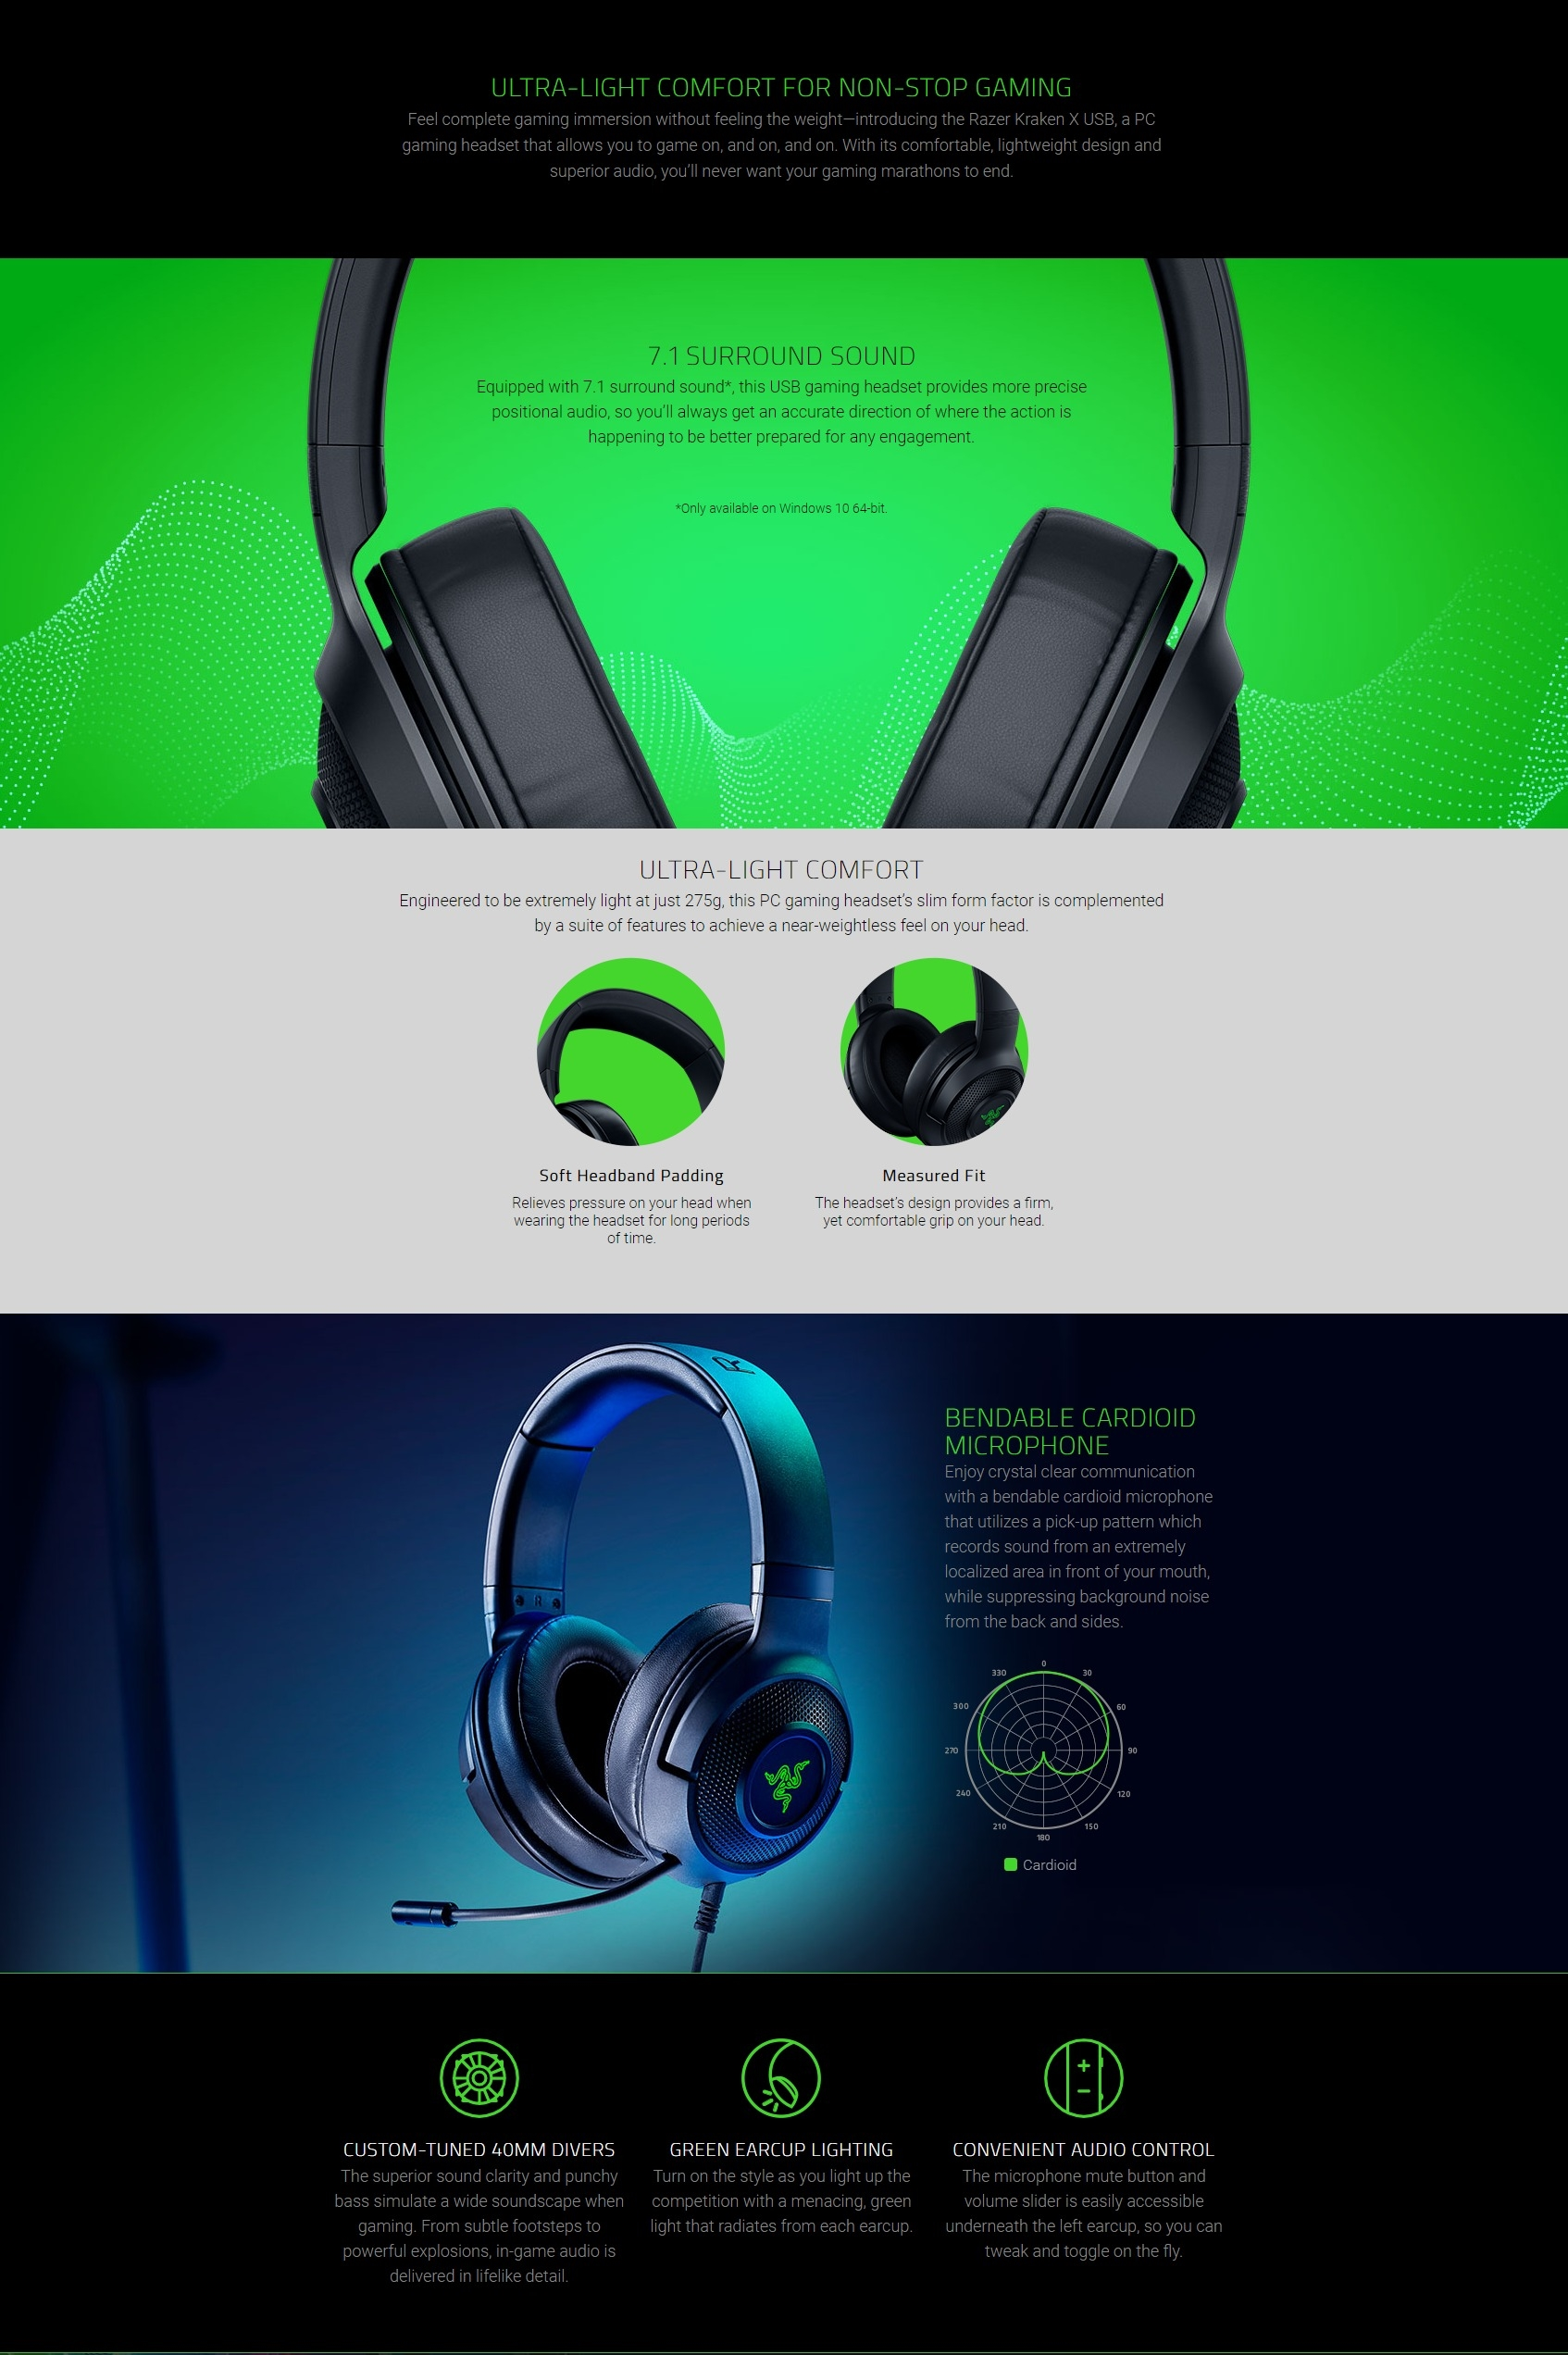 A large marketing image providing additional information about the product Razer Kraken X USB – Digital Surround Sound Gaming Headset - Additional alt info not provided